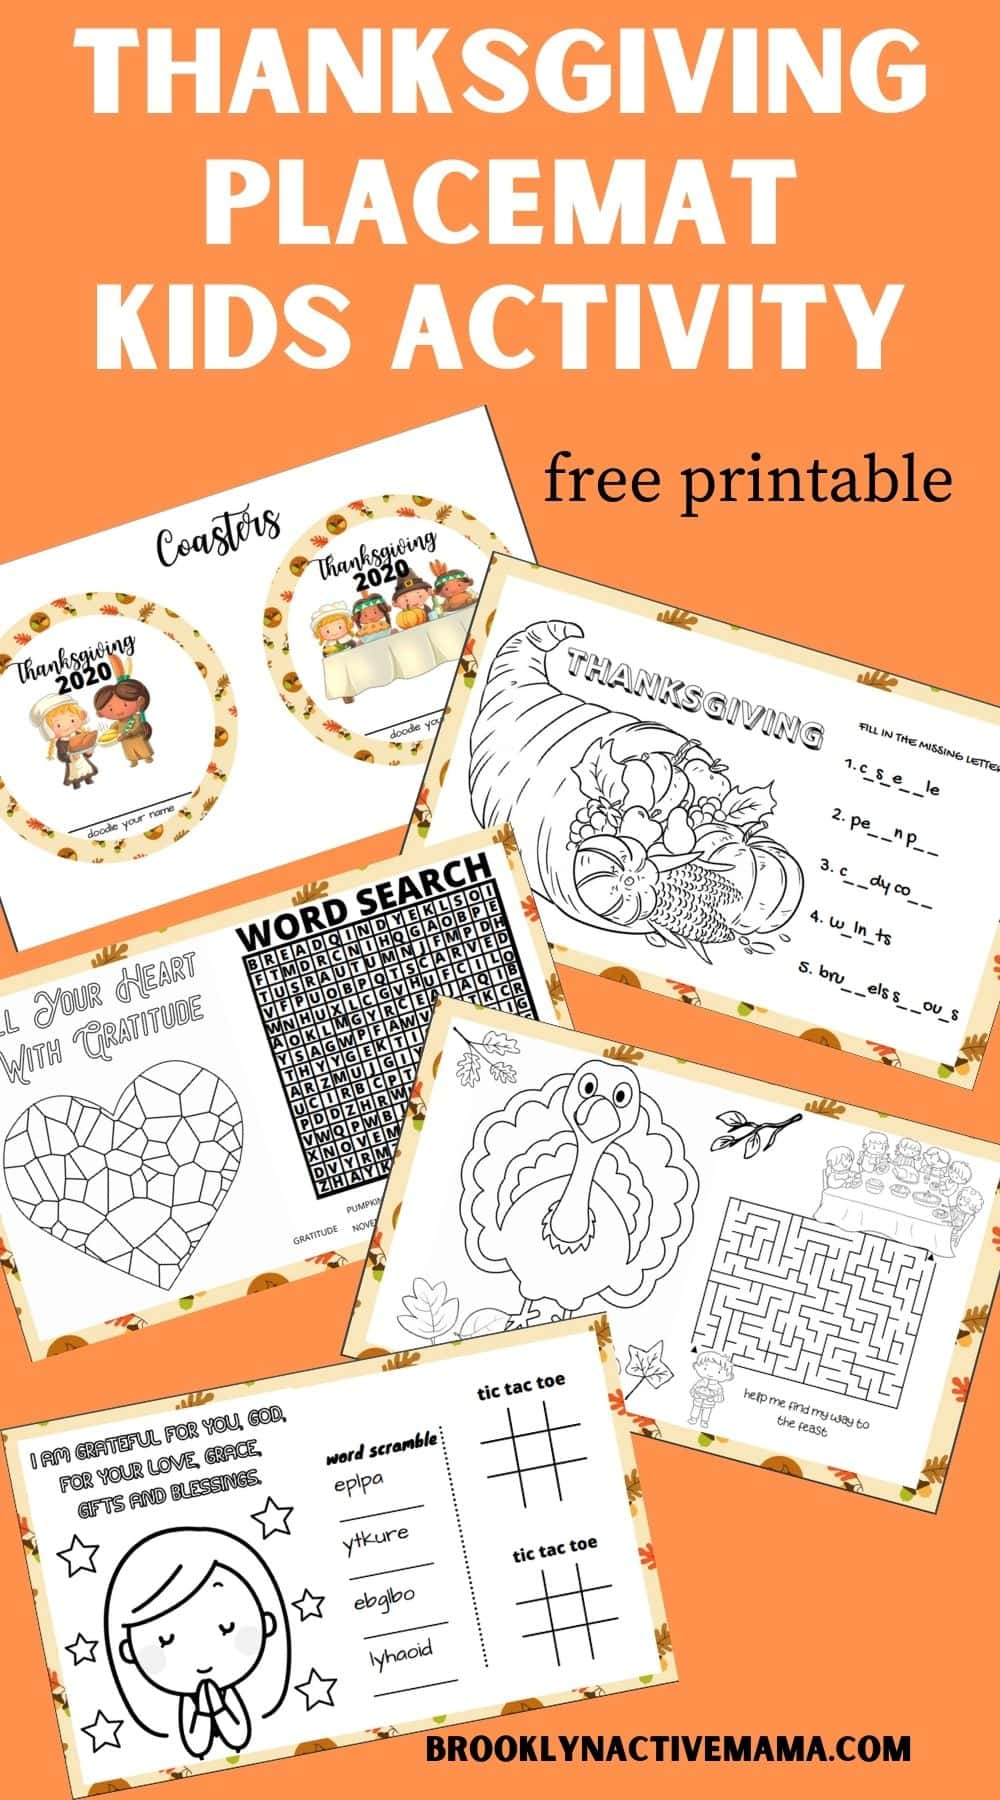 thanksgiving Placemats kids activity